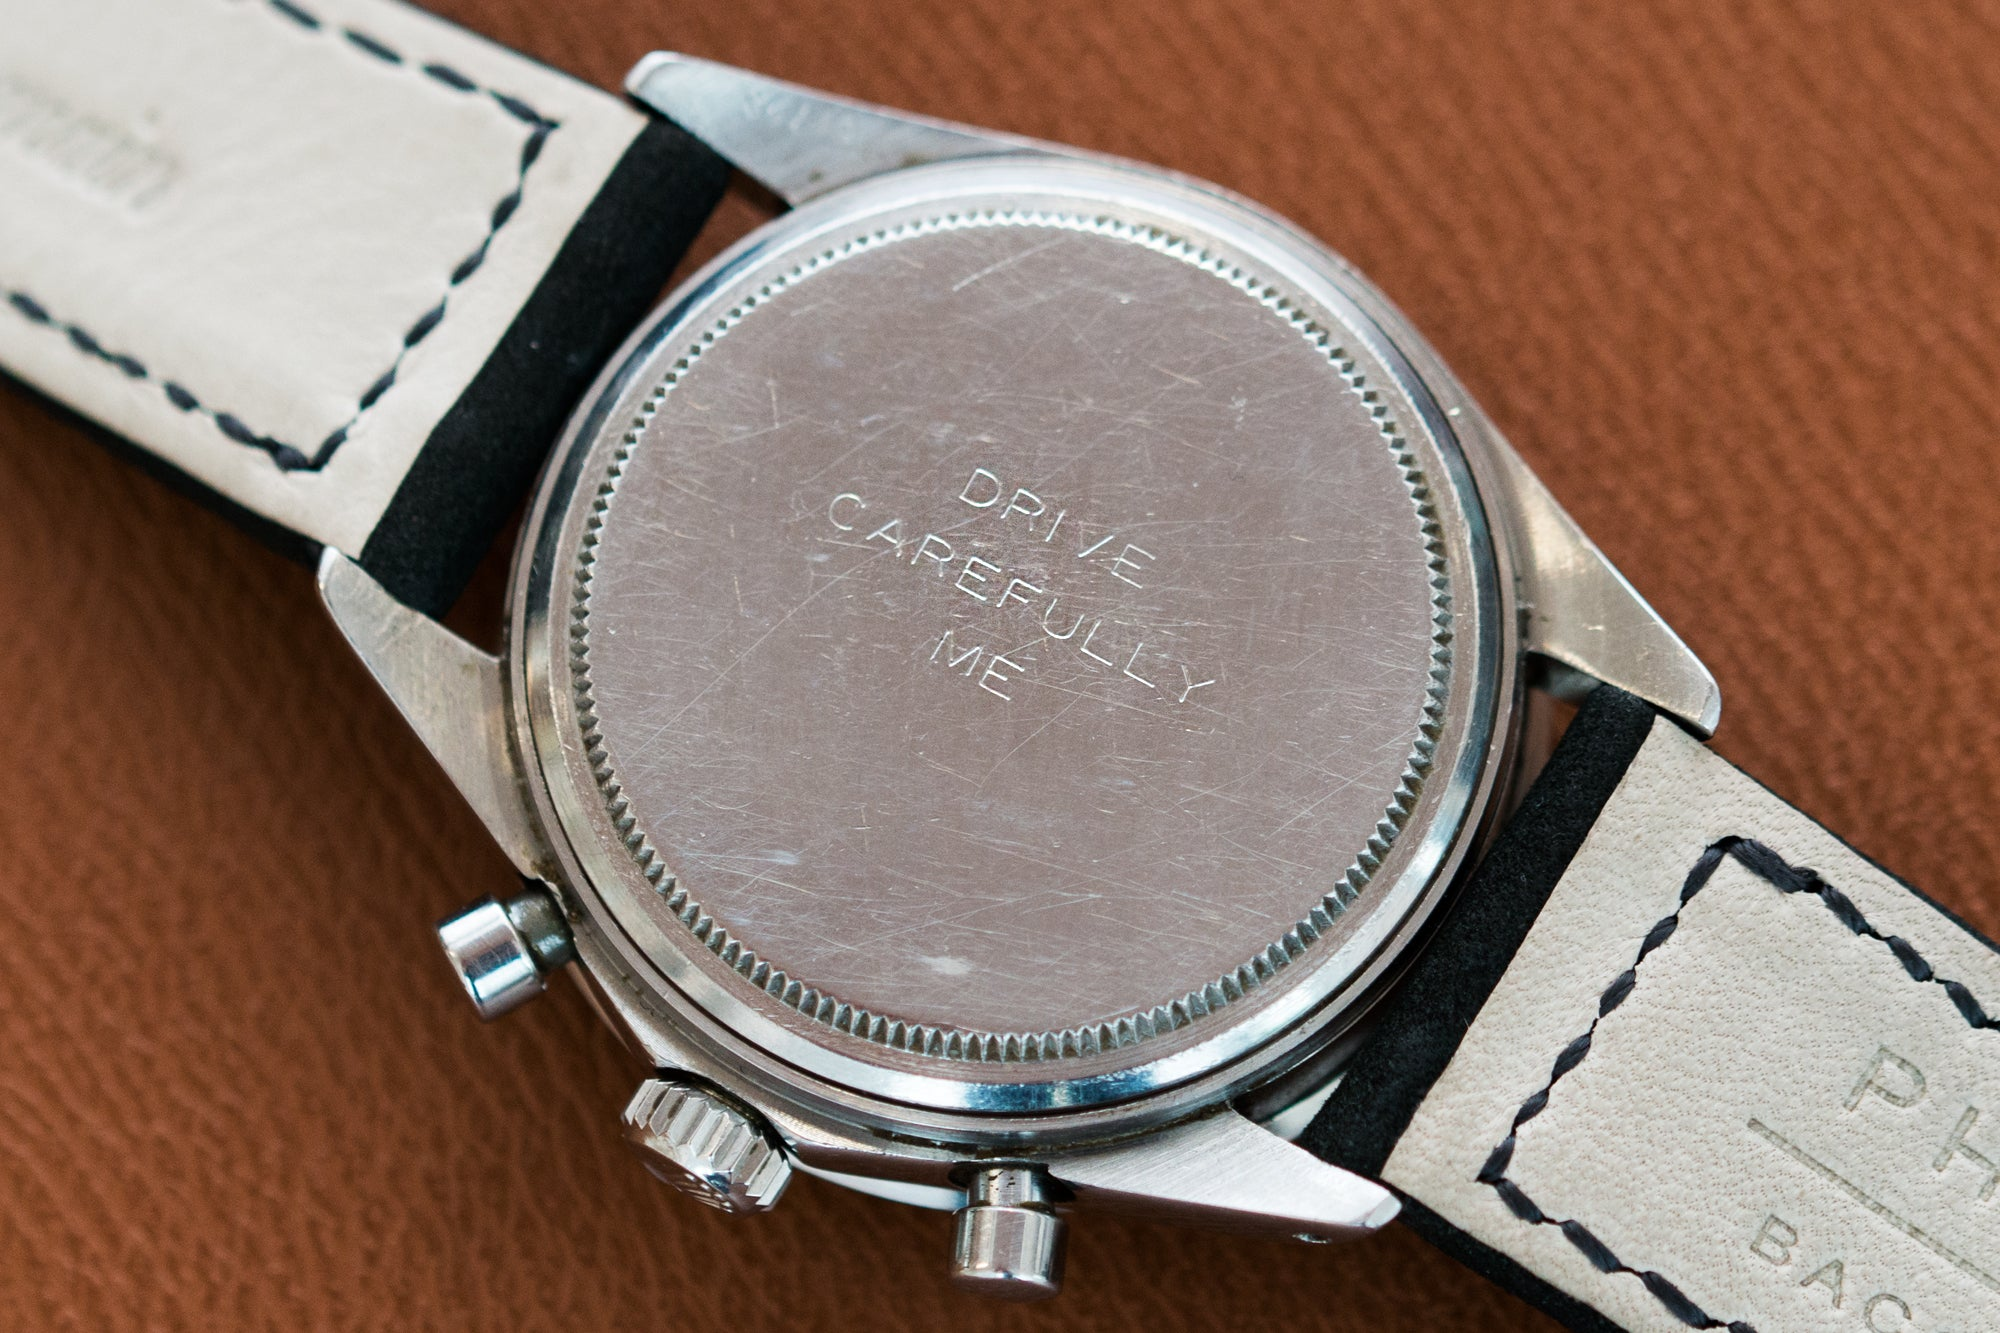 Paul Newman's personal Daytona with the caseback engraving 'DRIVE CAREFULLY ME' at A Collected Man London